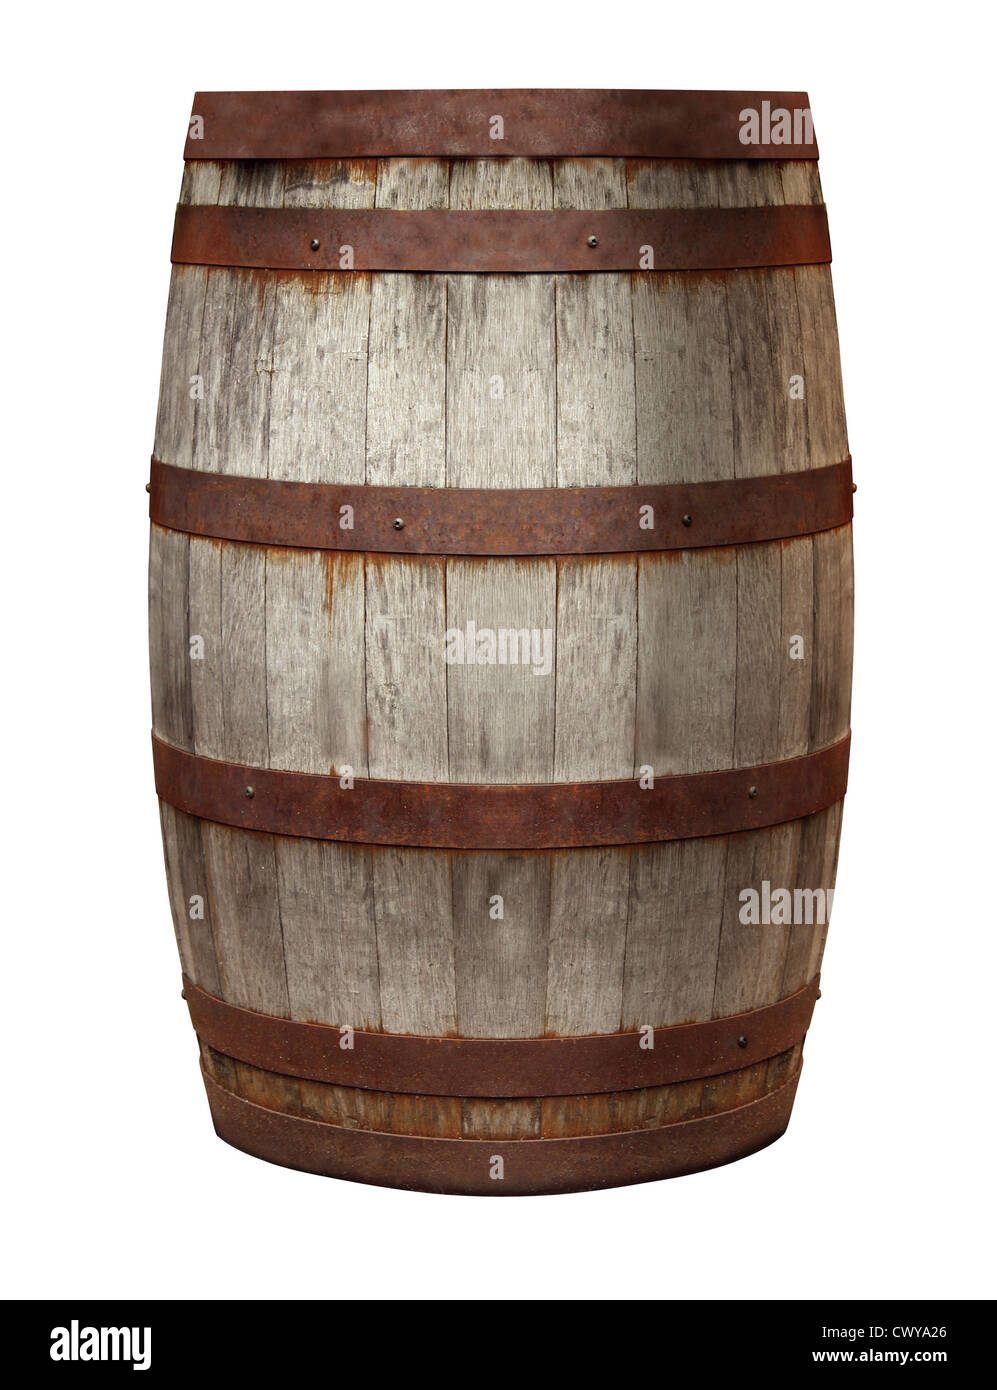 Old Barrel made of vintage weathered wood and rusty metal rings on an isolated white background for storing alcohol - Stock Image